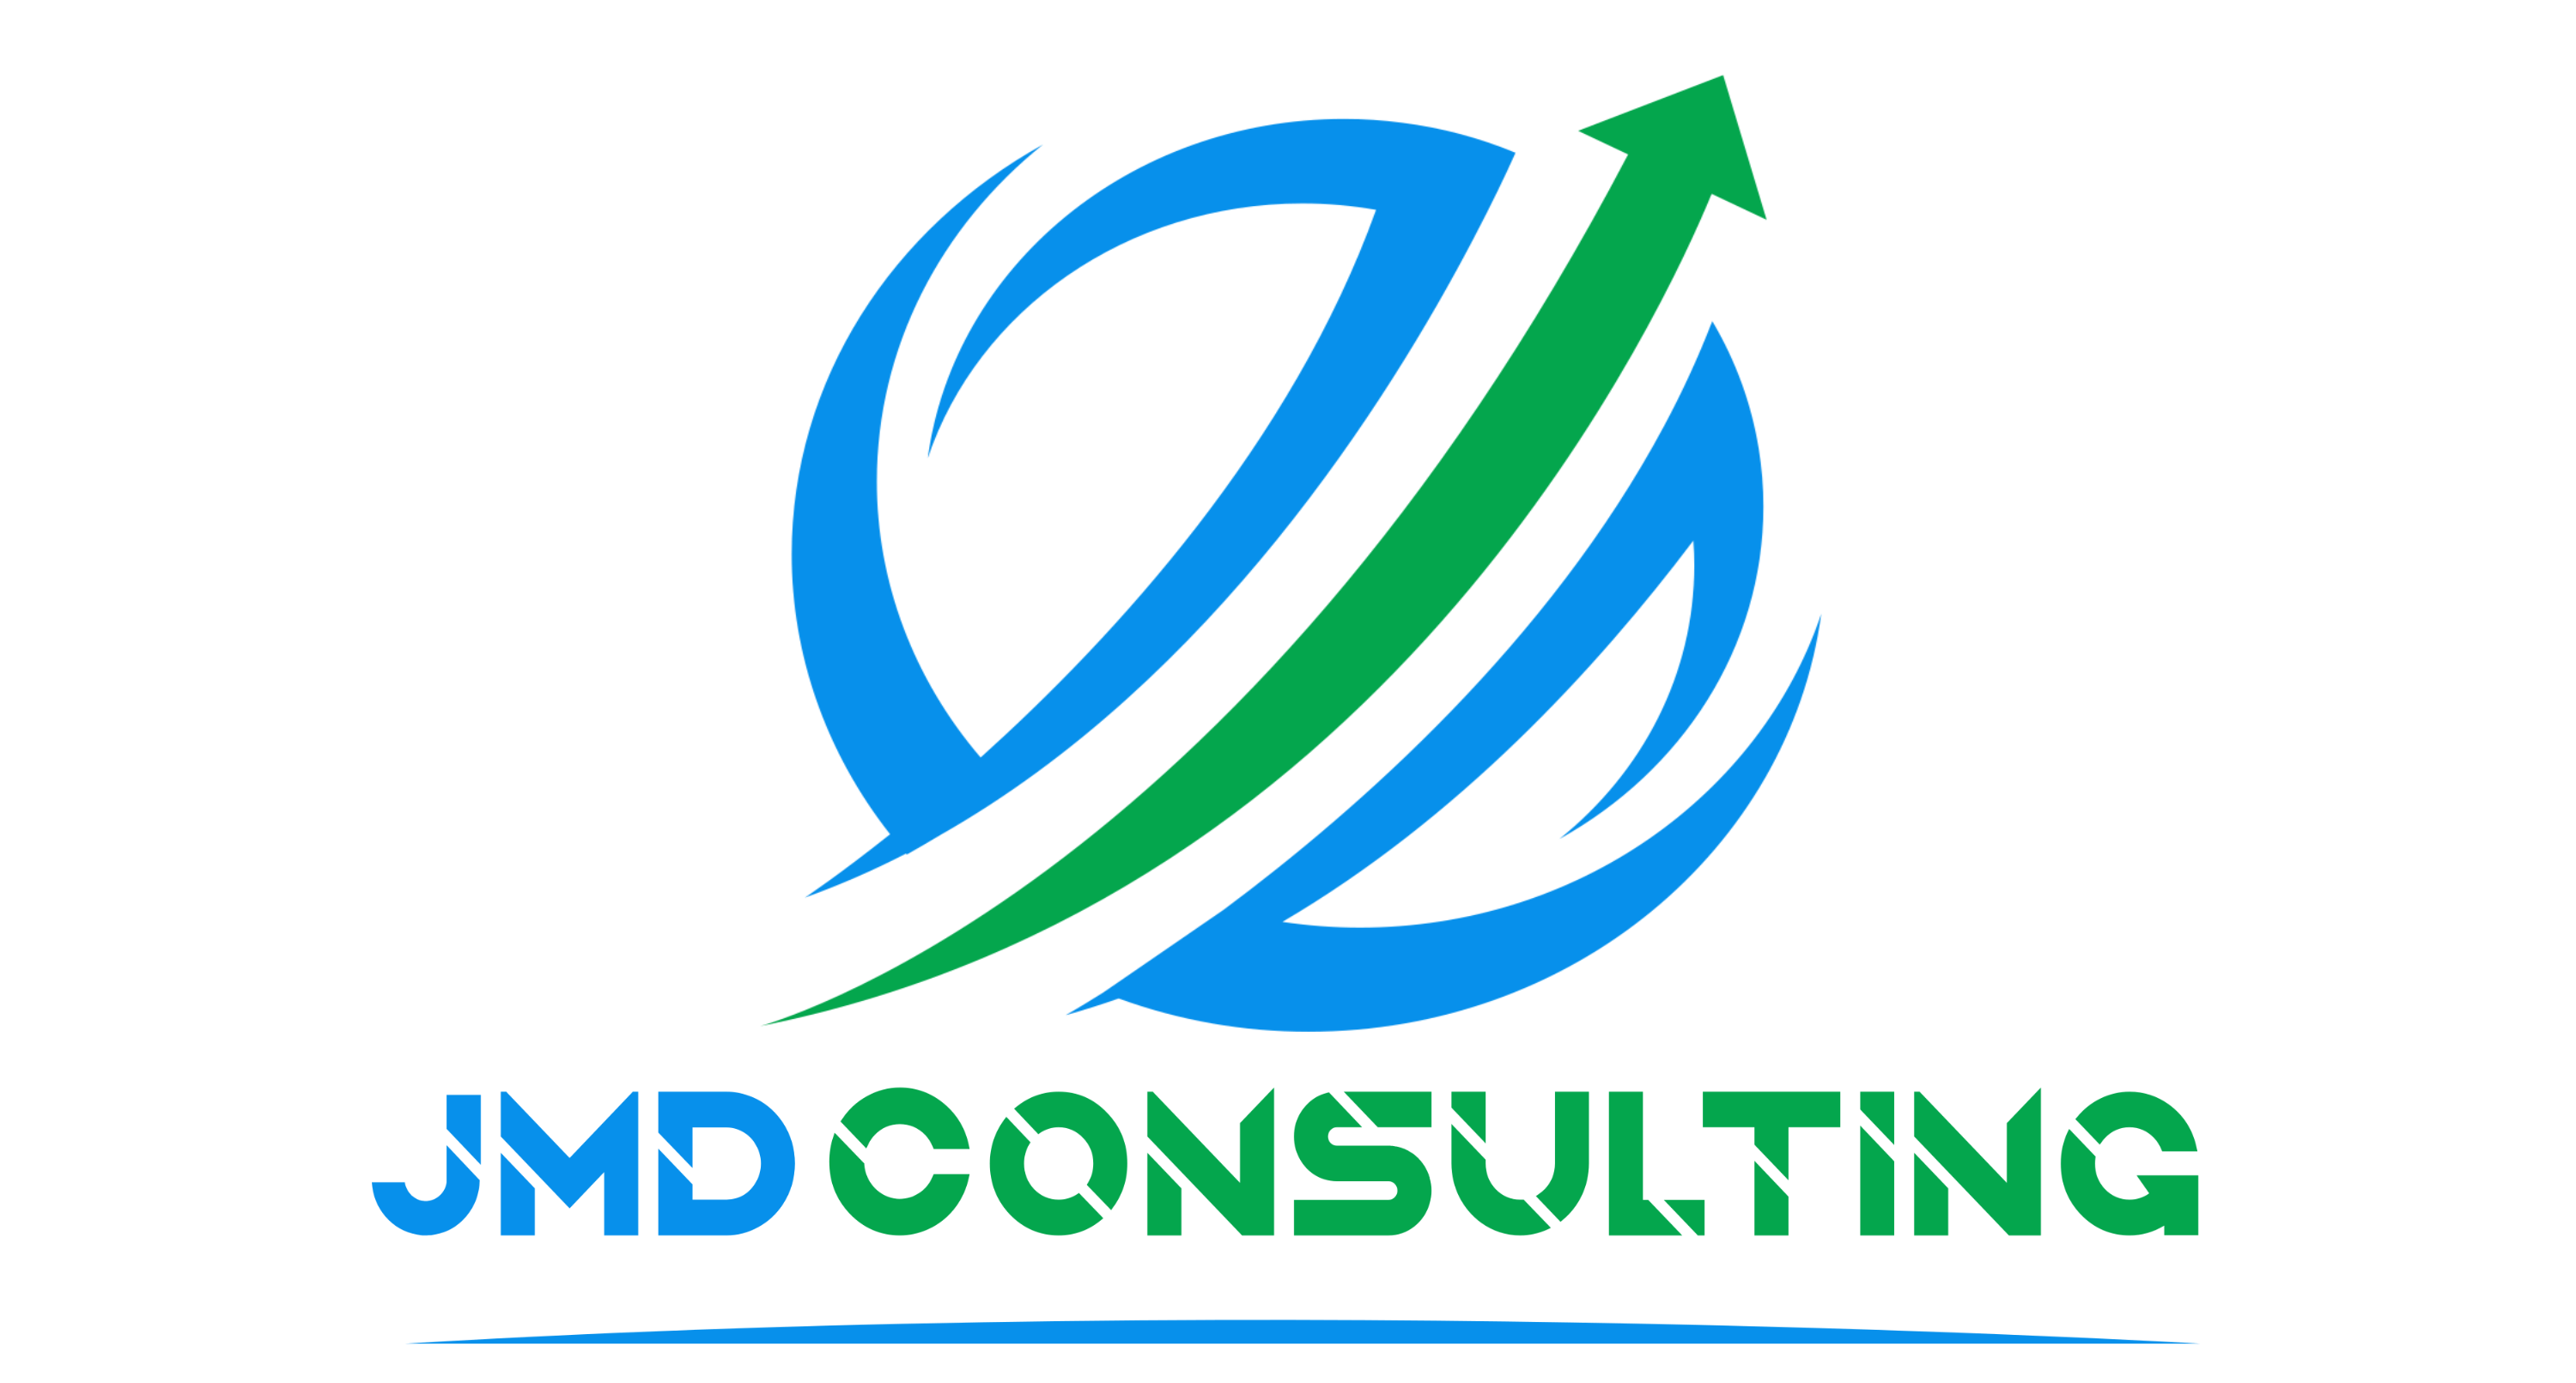 JMD consulting